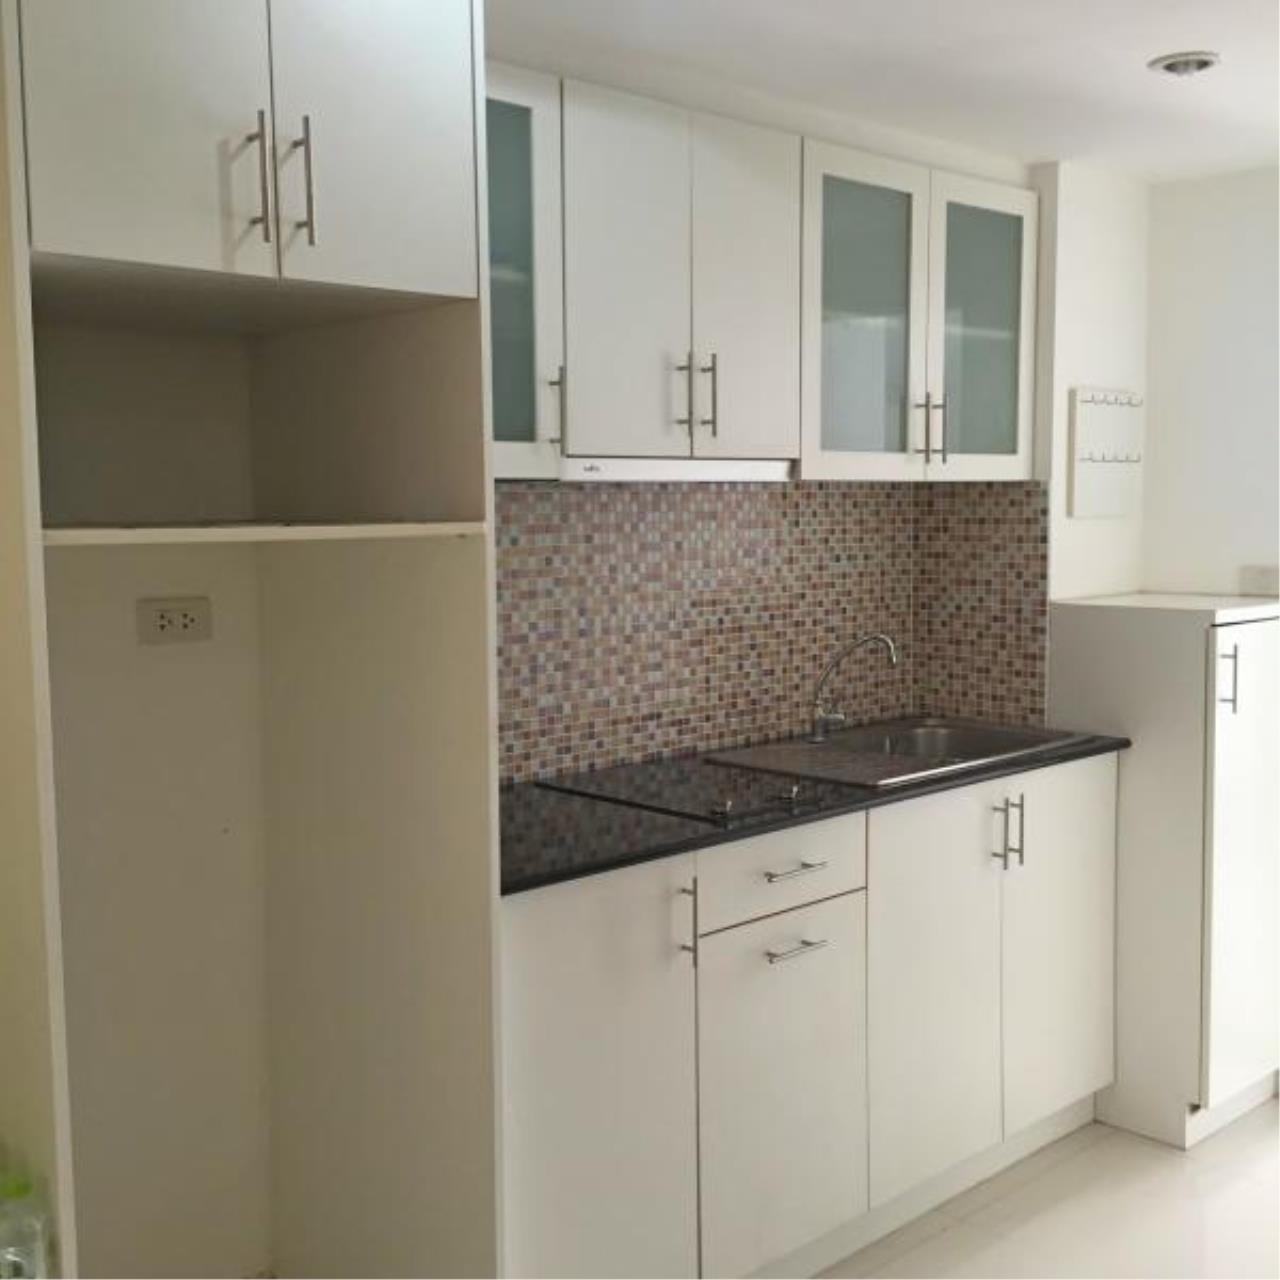 RE/MAX Town & Country Property Agency's Nice studio for sale in Jomtien 11